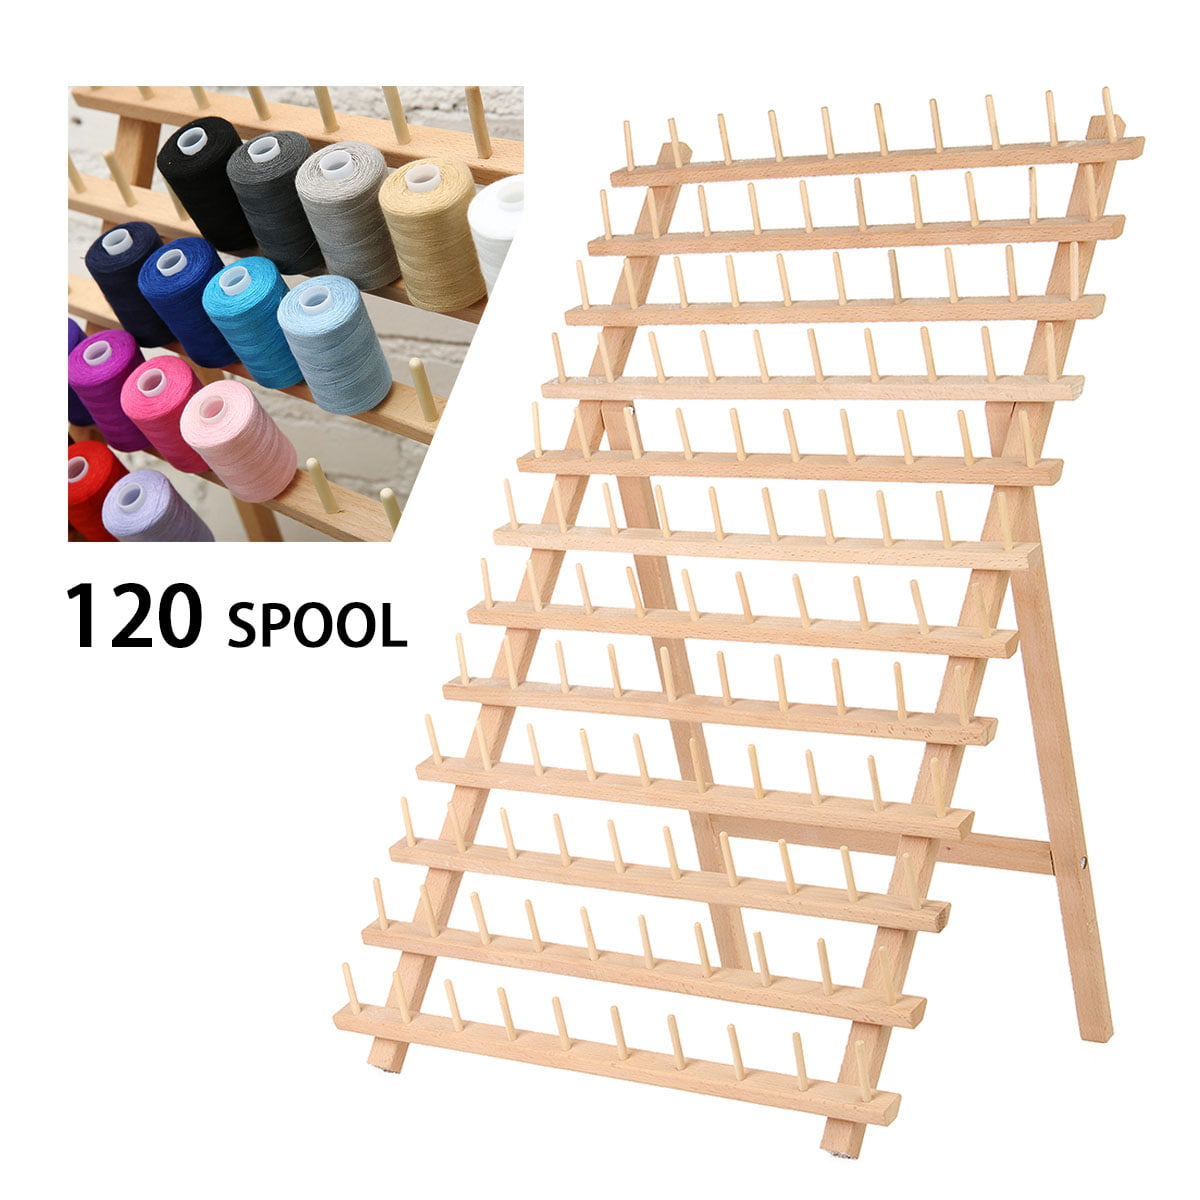 Single Spool Wooden Sewing Thread Stand